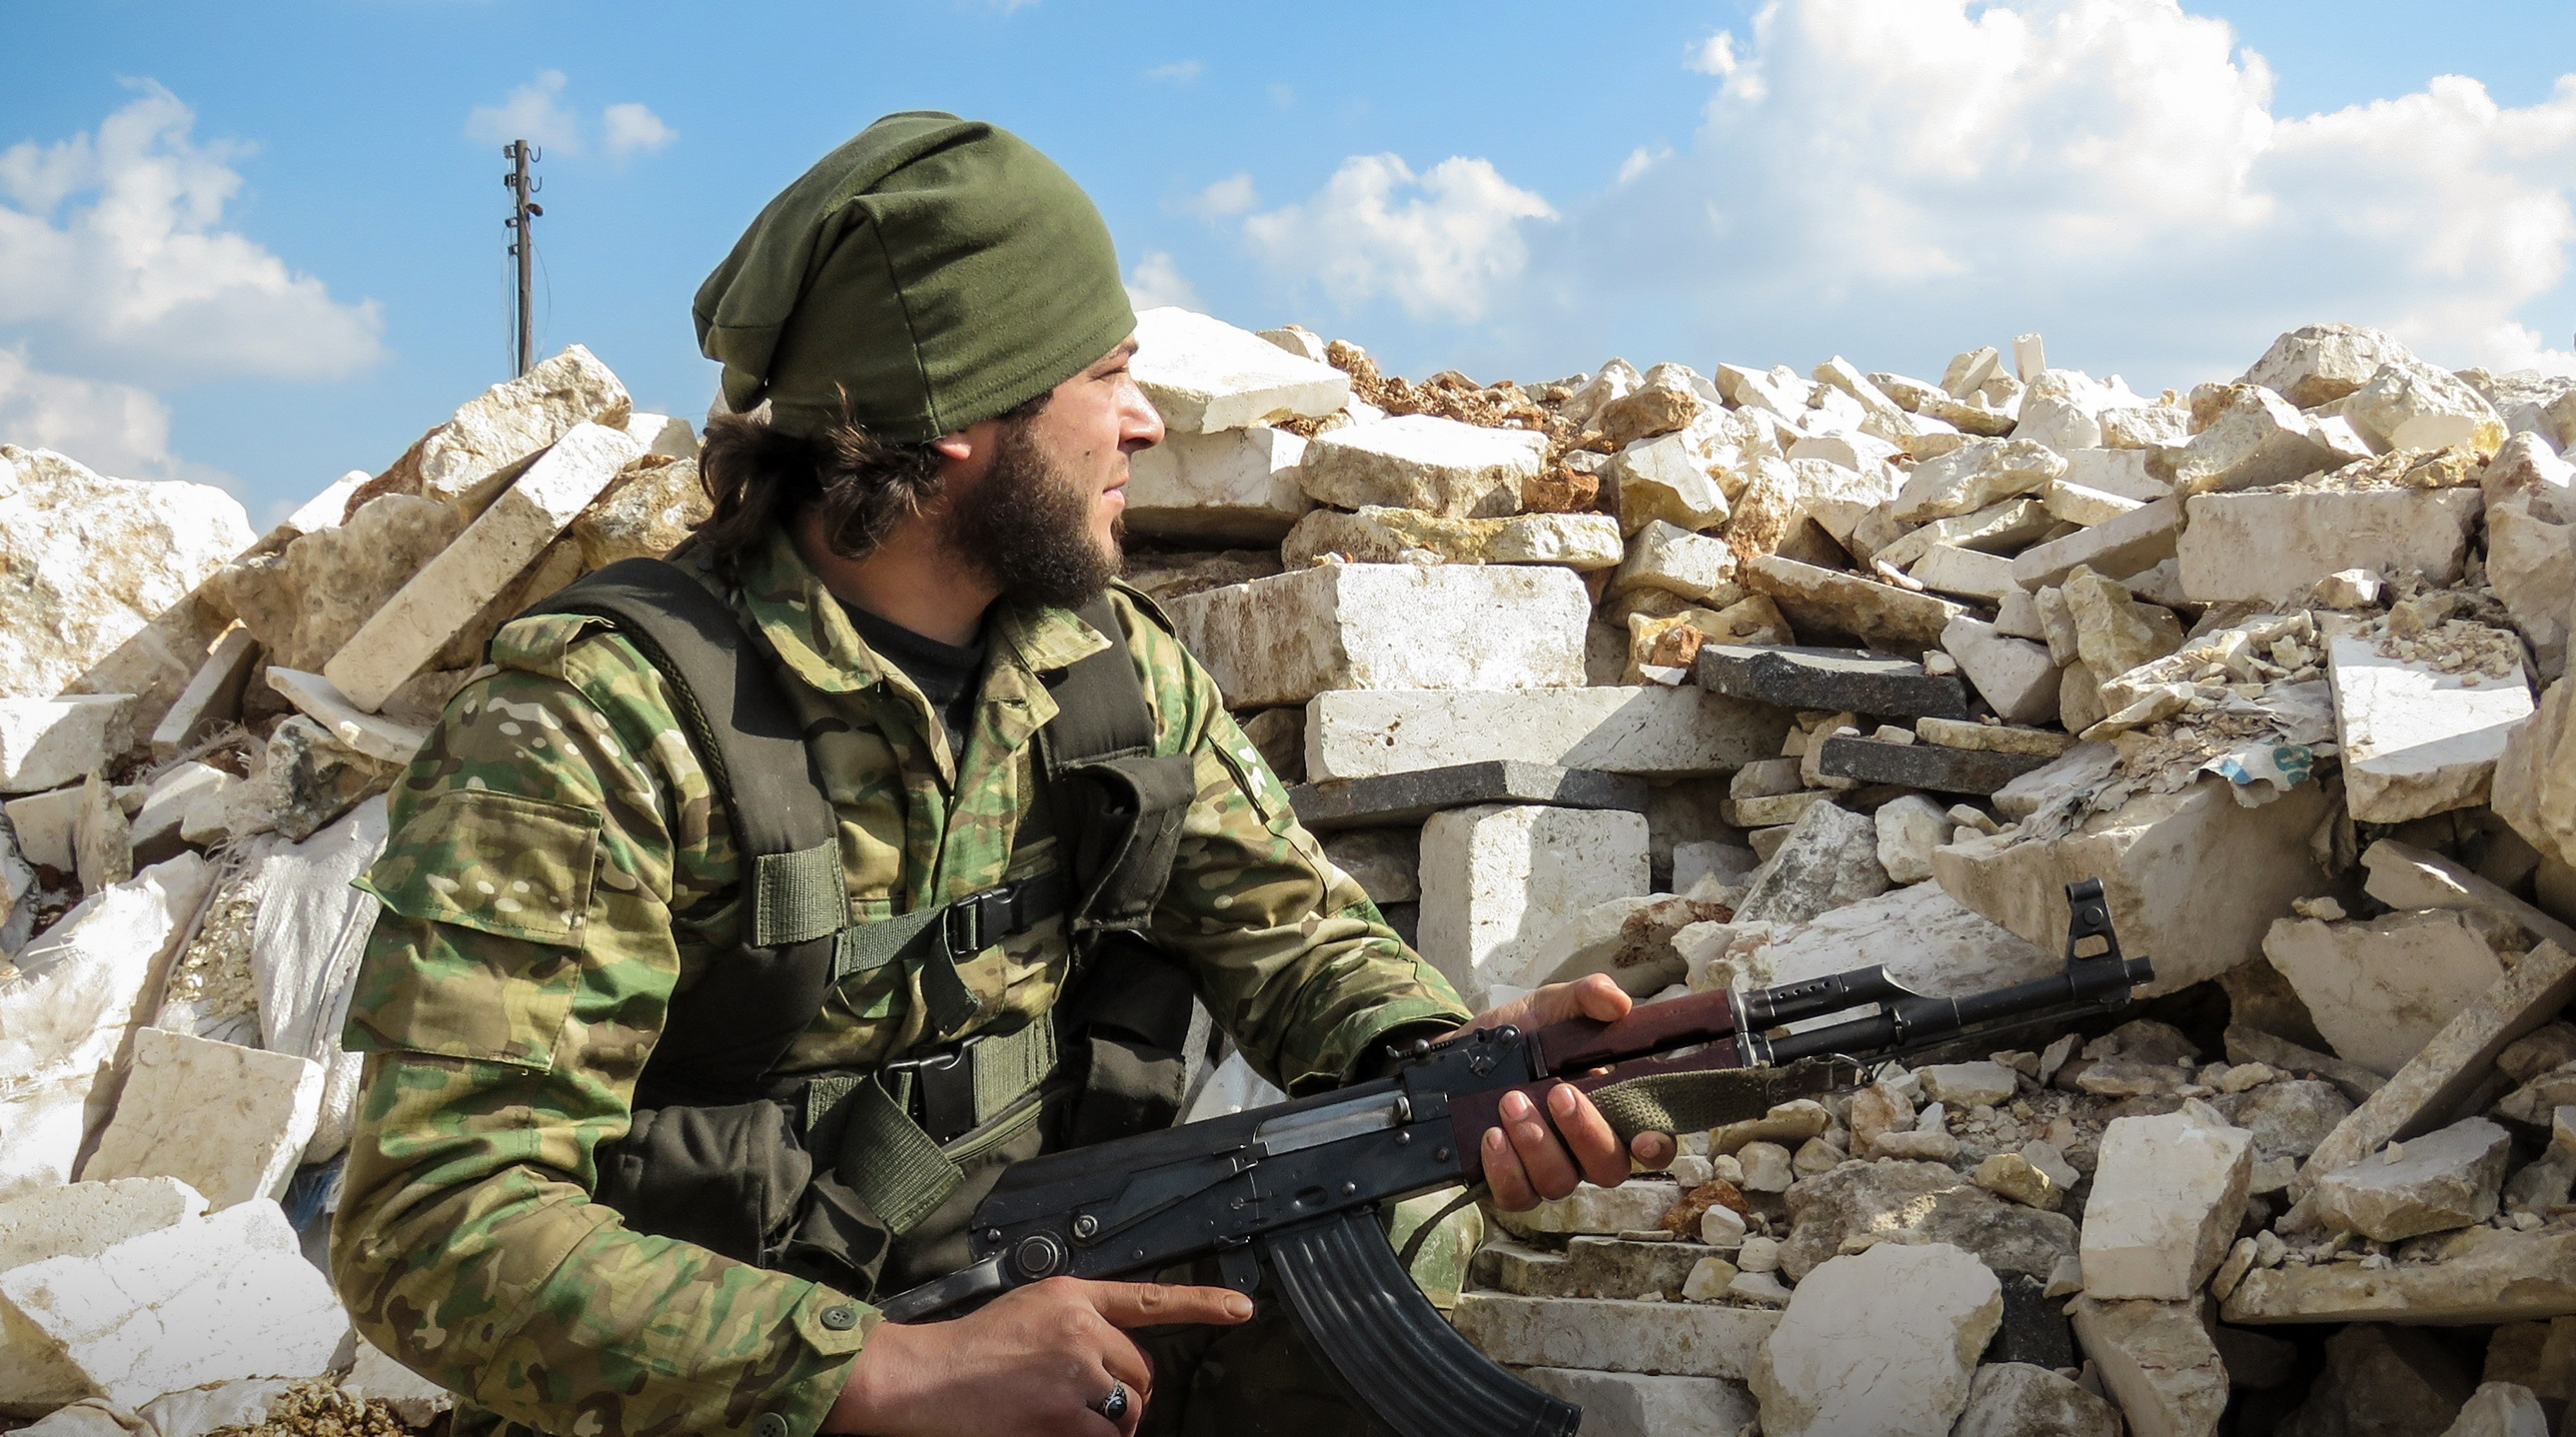 Syrian Opposition Sources Leak Details Of Deconfliction Agreement On Idlib